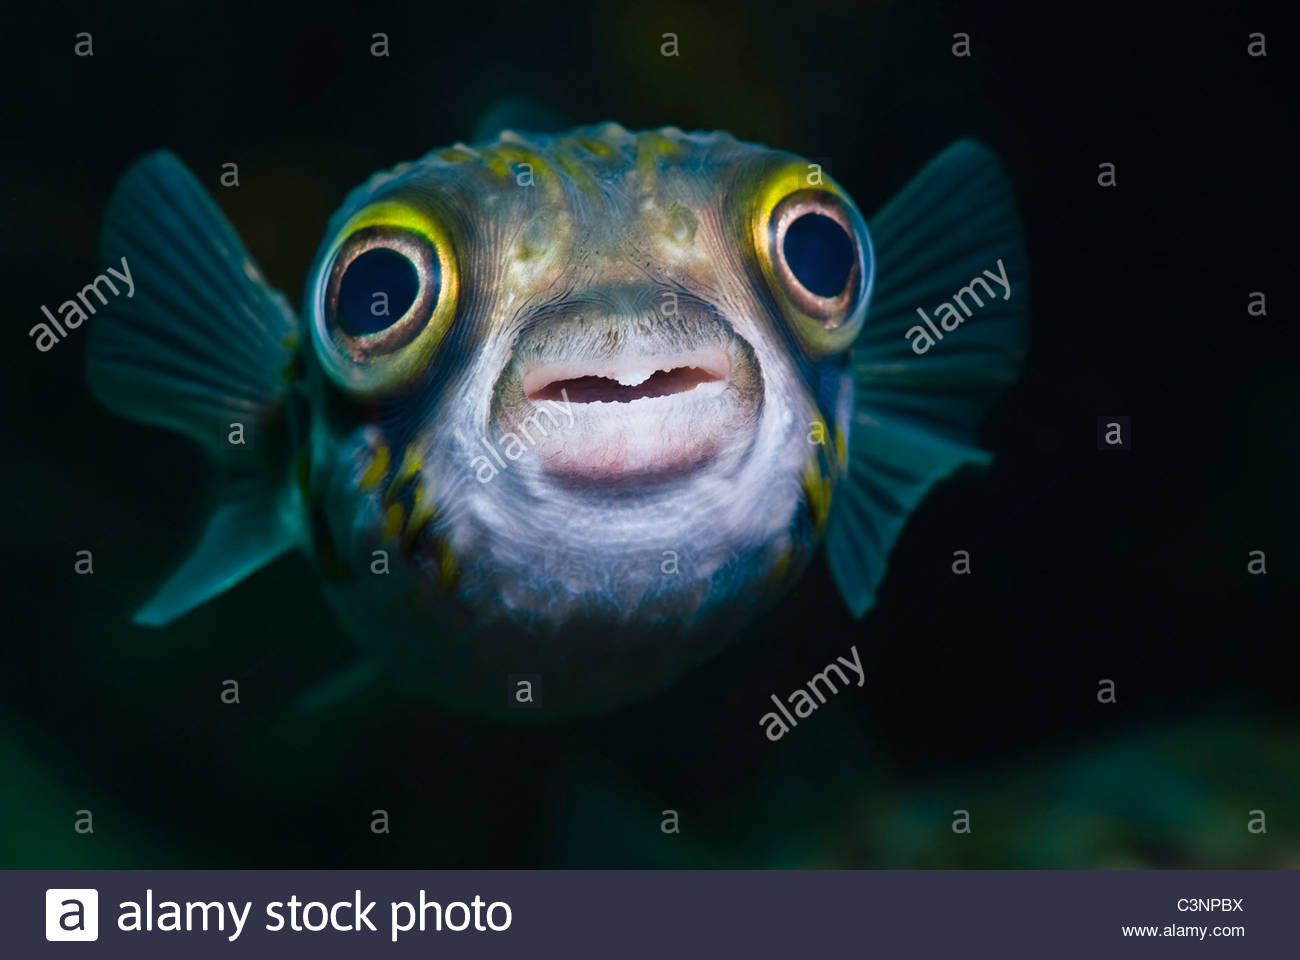 Busselton Buy And Sell >> Close-up of Pufferfish Stock Photo: 36743278 - Alamy